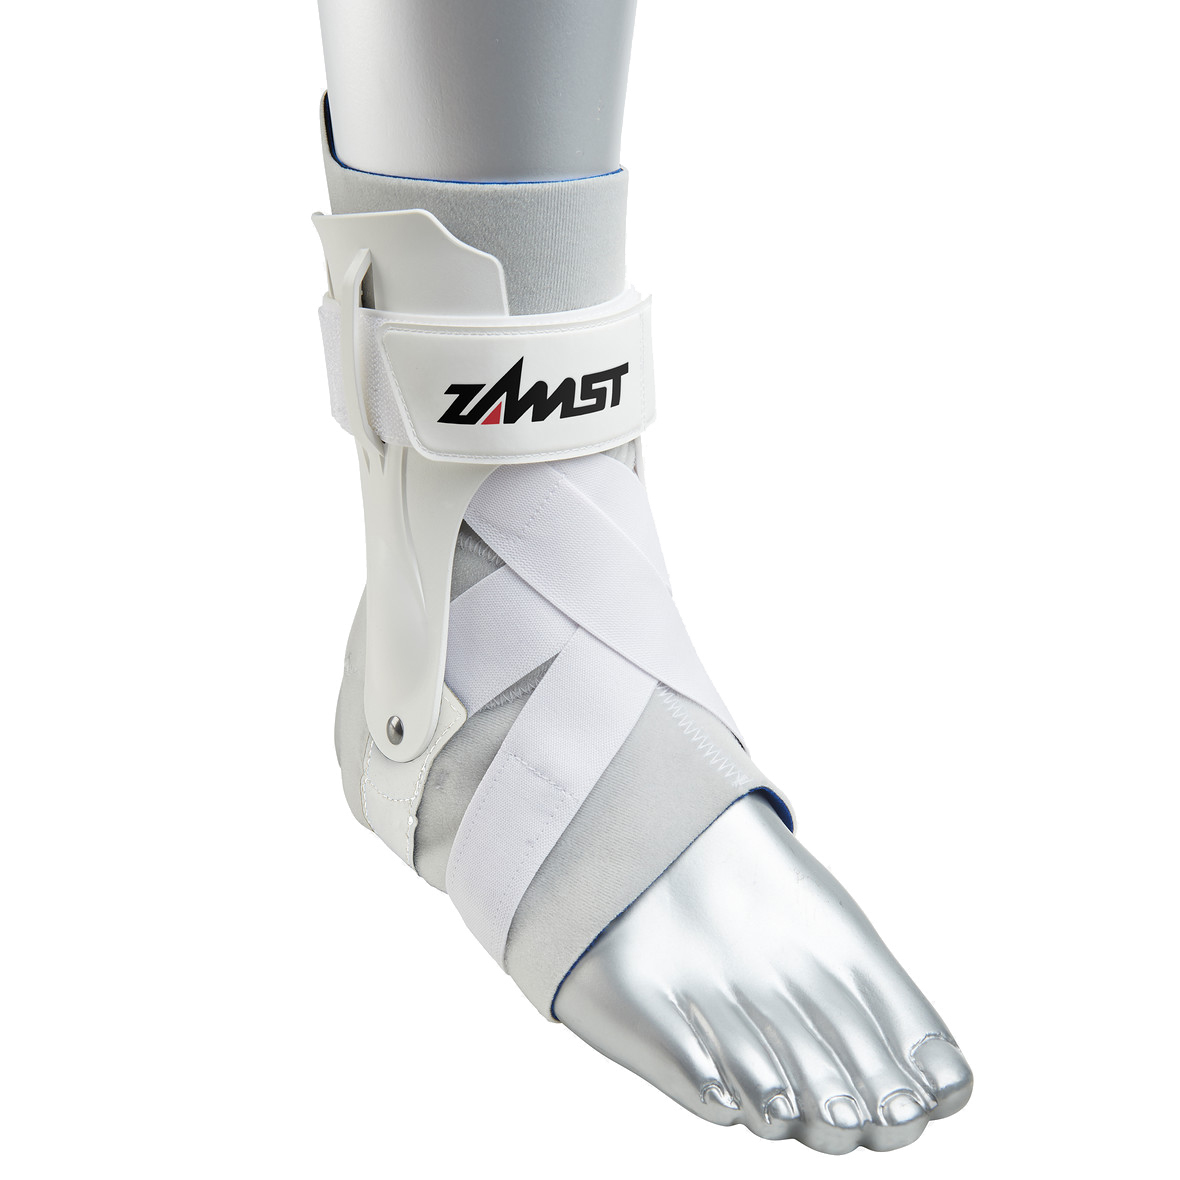 Zamst A2-DX Enkelbrace - Wit - Links - XL